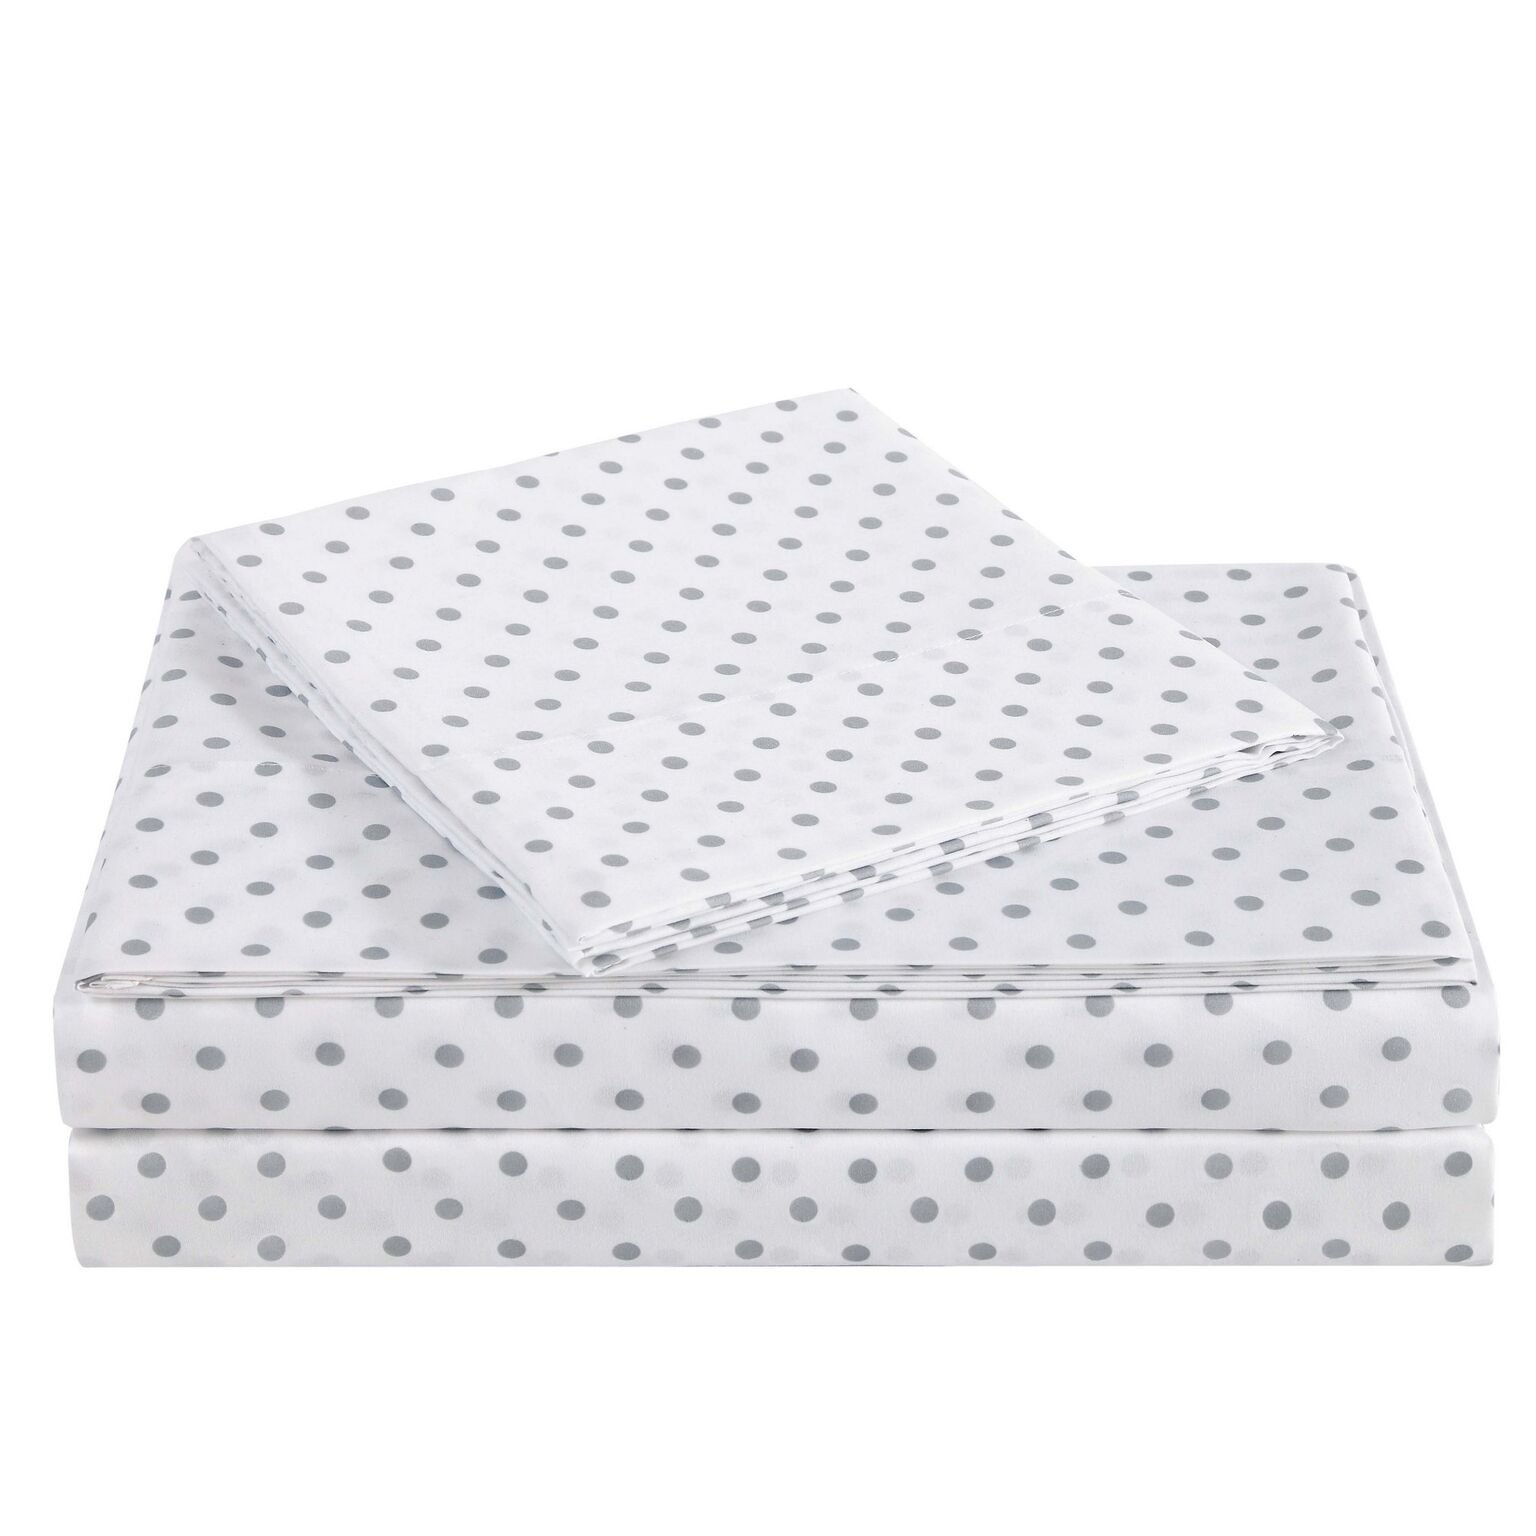 Truly Soft SS2329GYFU-4700 Everyday Printed Dot Sheet Set, Full, Grey by Truly Soft Everyday (Image #2)